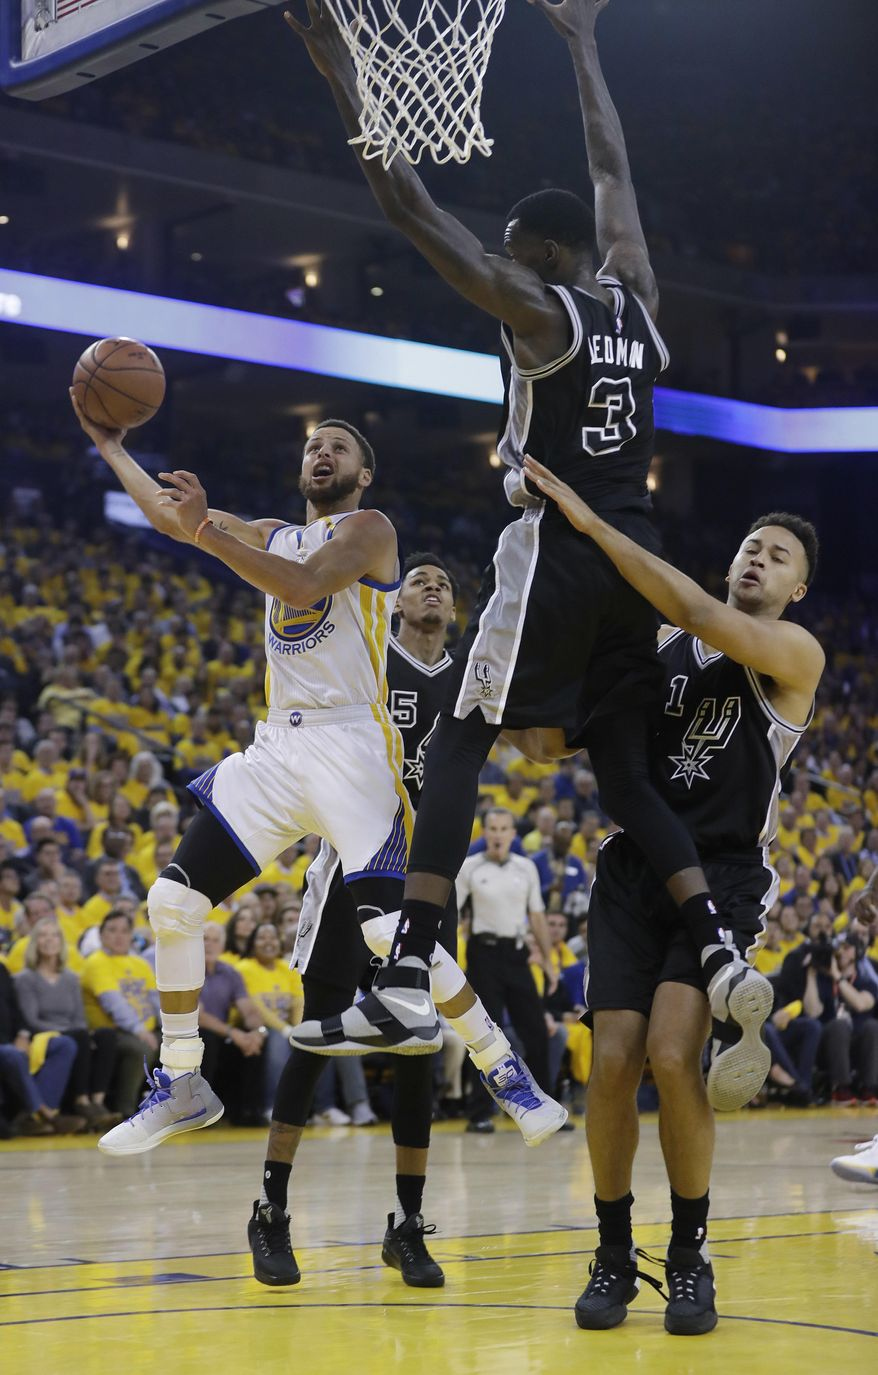 Golden State Warriors' Stephen Curry, left, drives past San Antonio Spurs' Dewayne Dedmon (3) and Kyle Anderson (1) during the first half of Game 2 of the NBA basketball Western Conference finals, Tuesday, May 16, 2017, in Oakland, Calif. (AP Photo/Marcio Jose Sanchez)